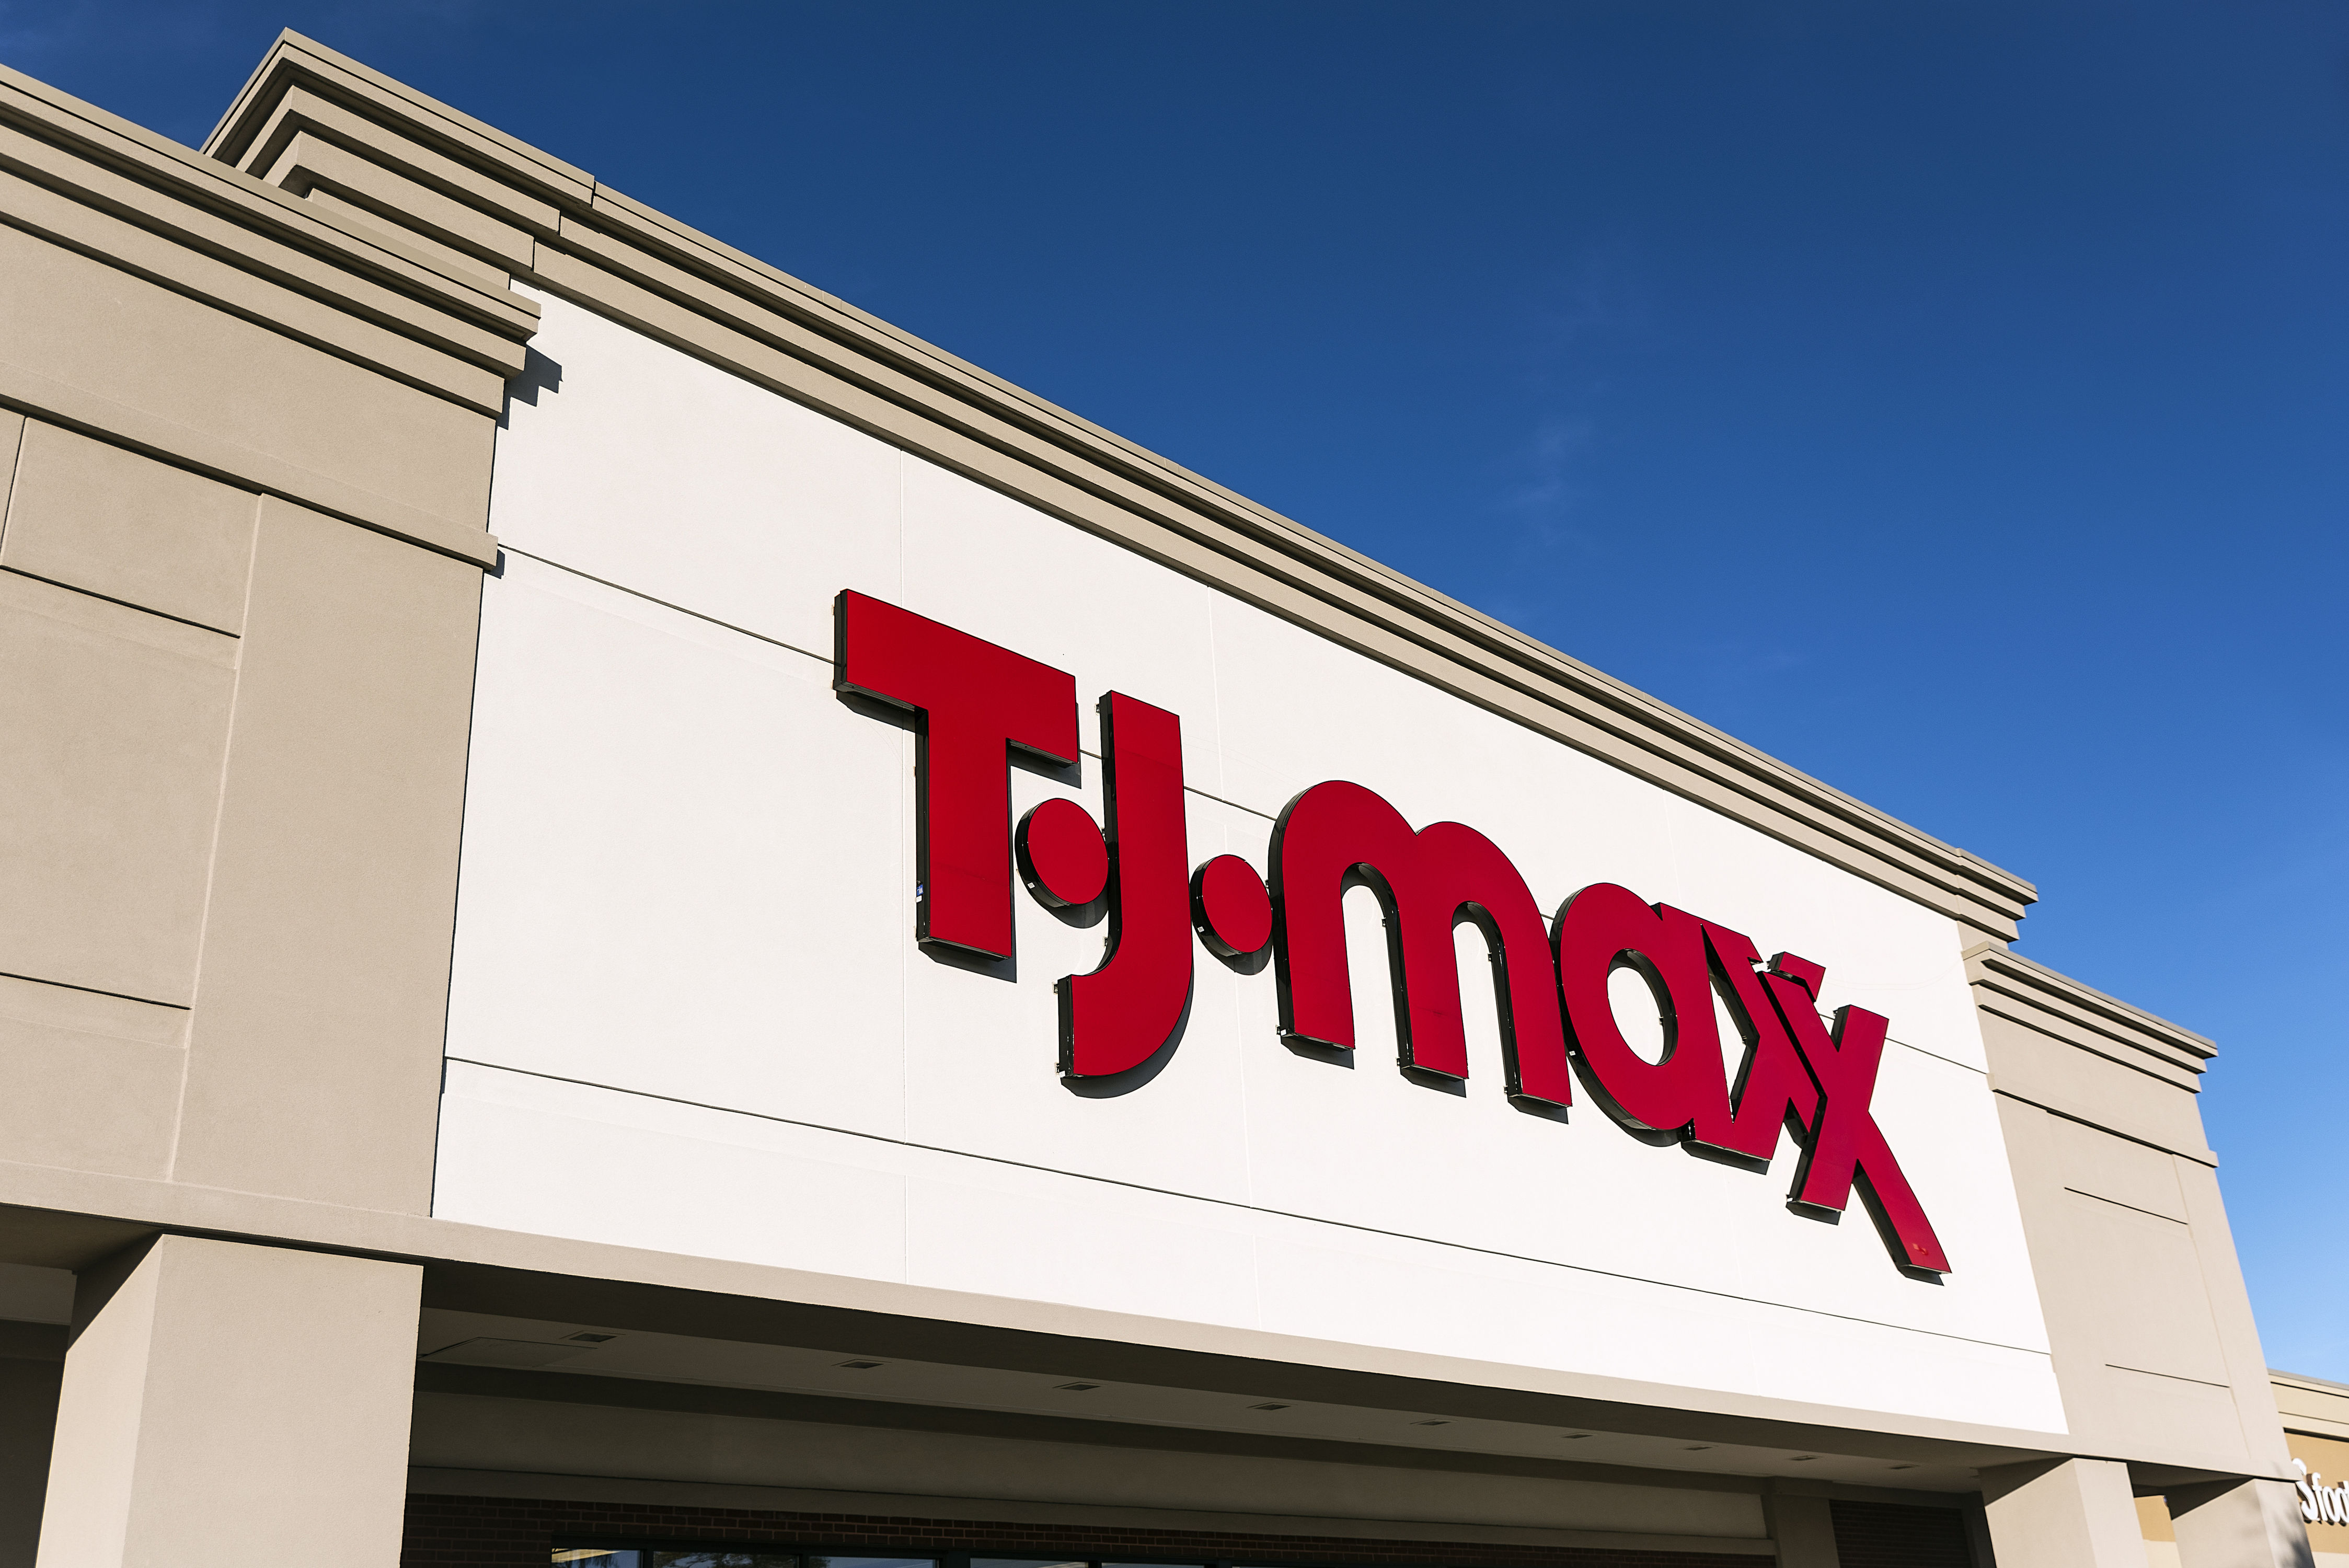 The One Item I'll Never Buy at T.J. Maxx